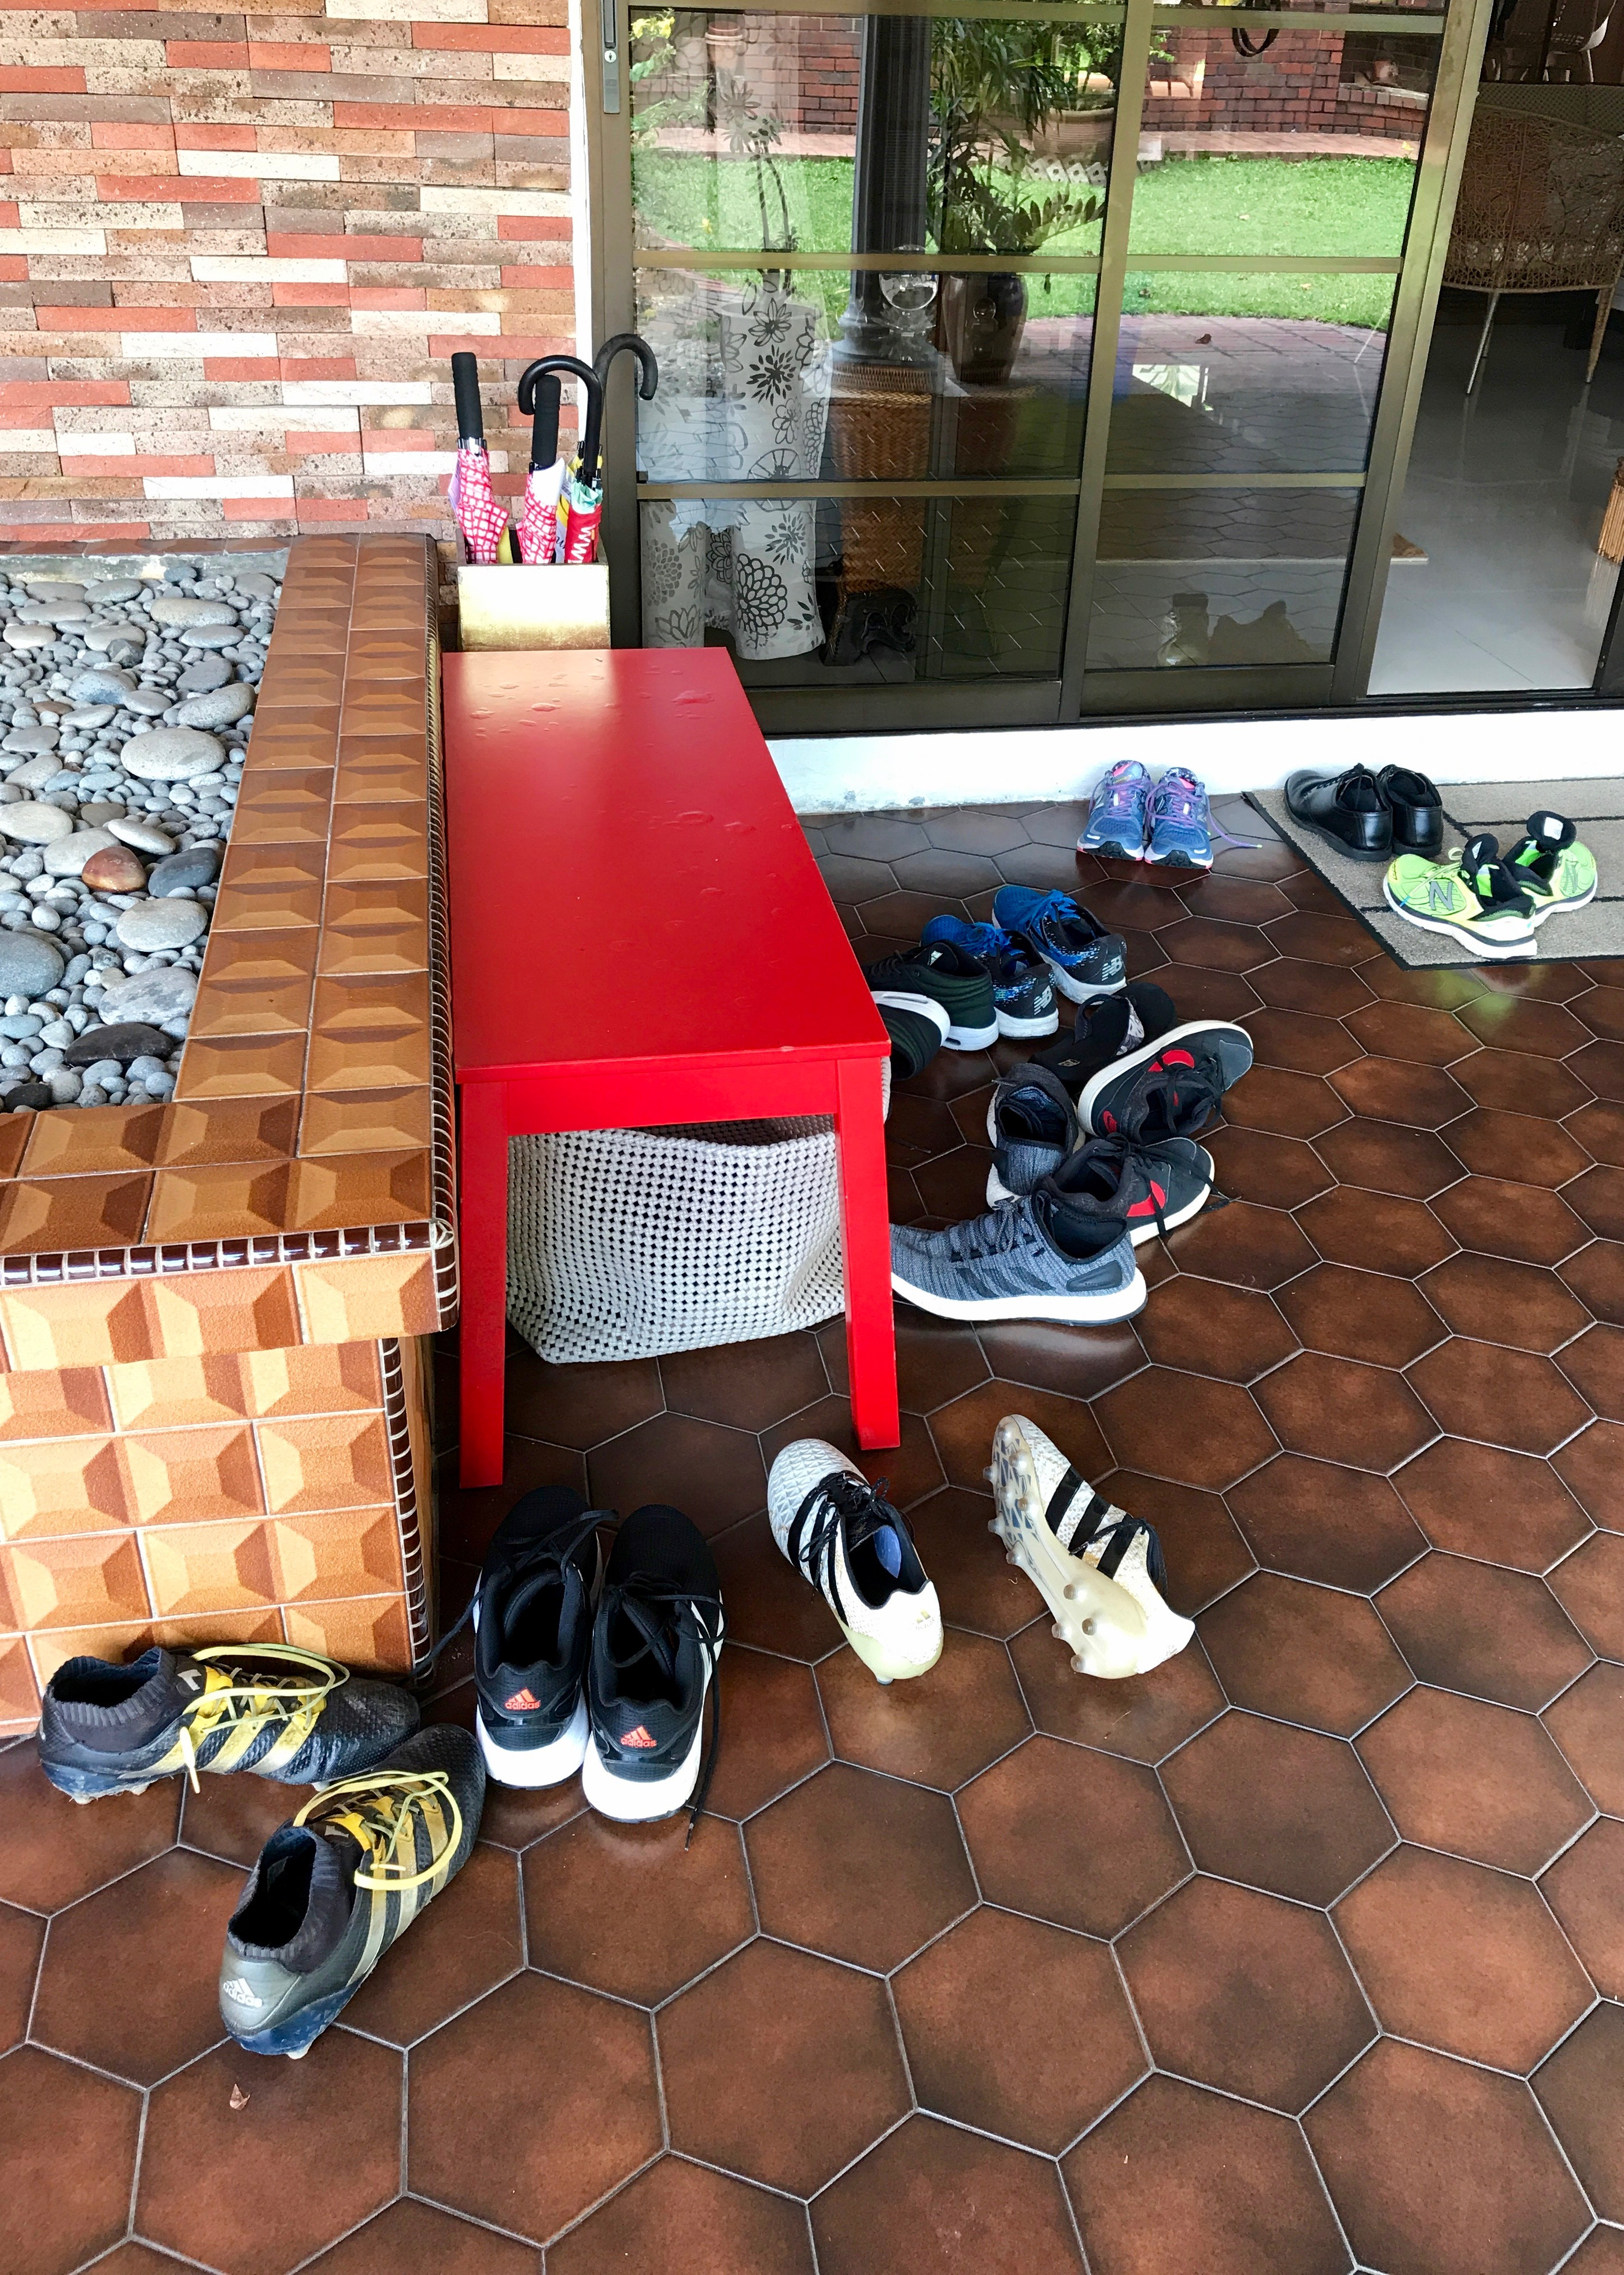 Shoes outside entrance